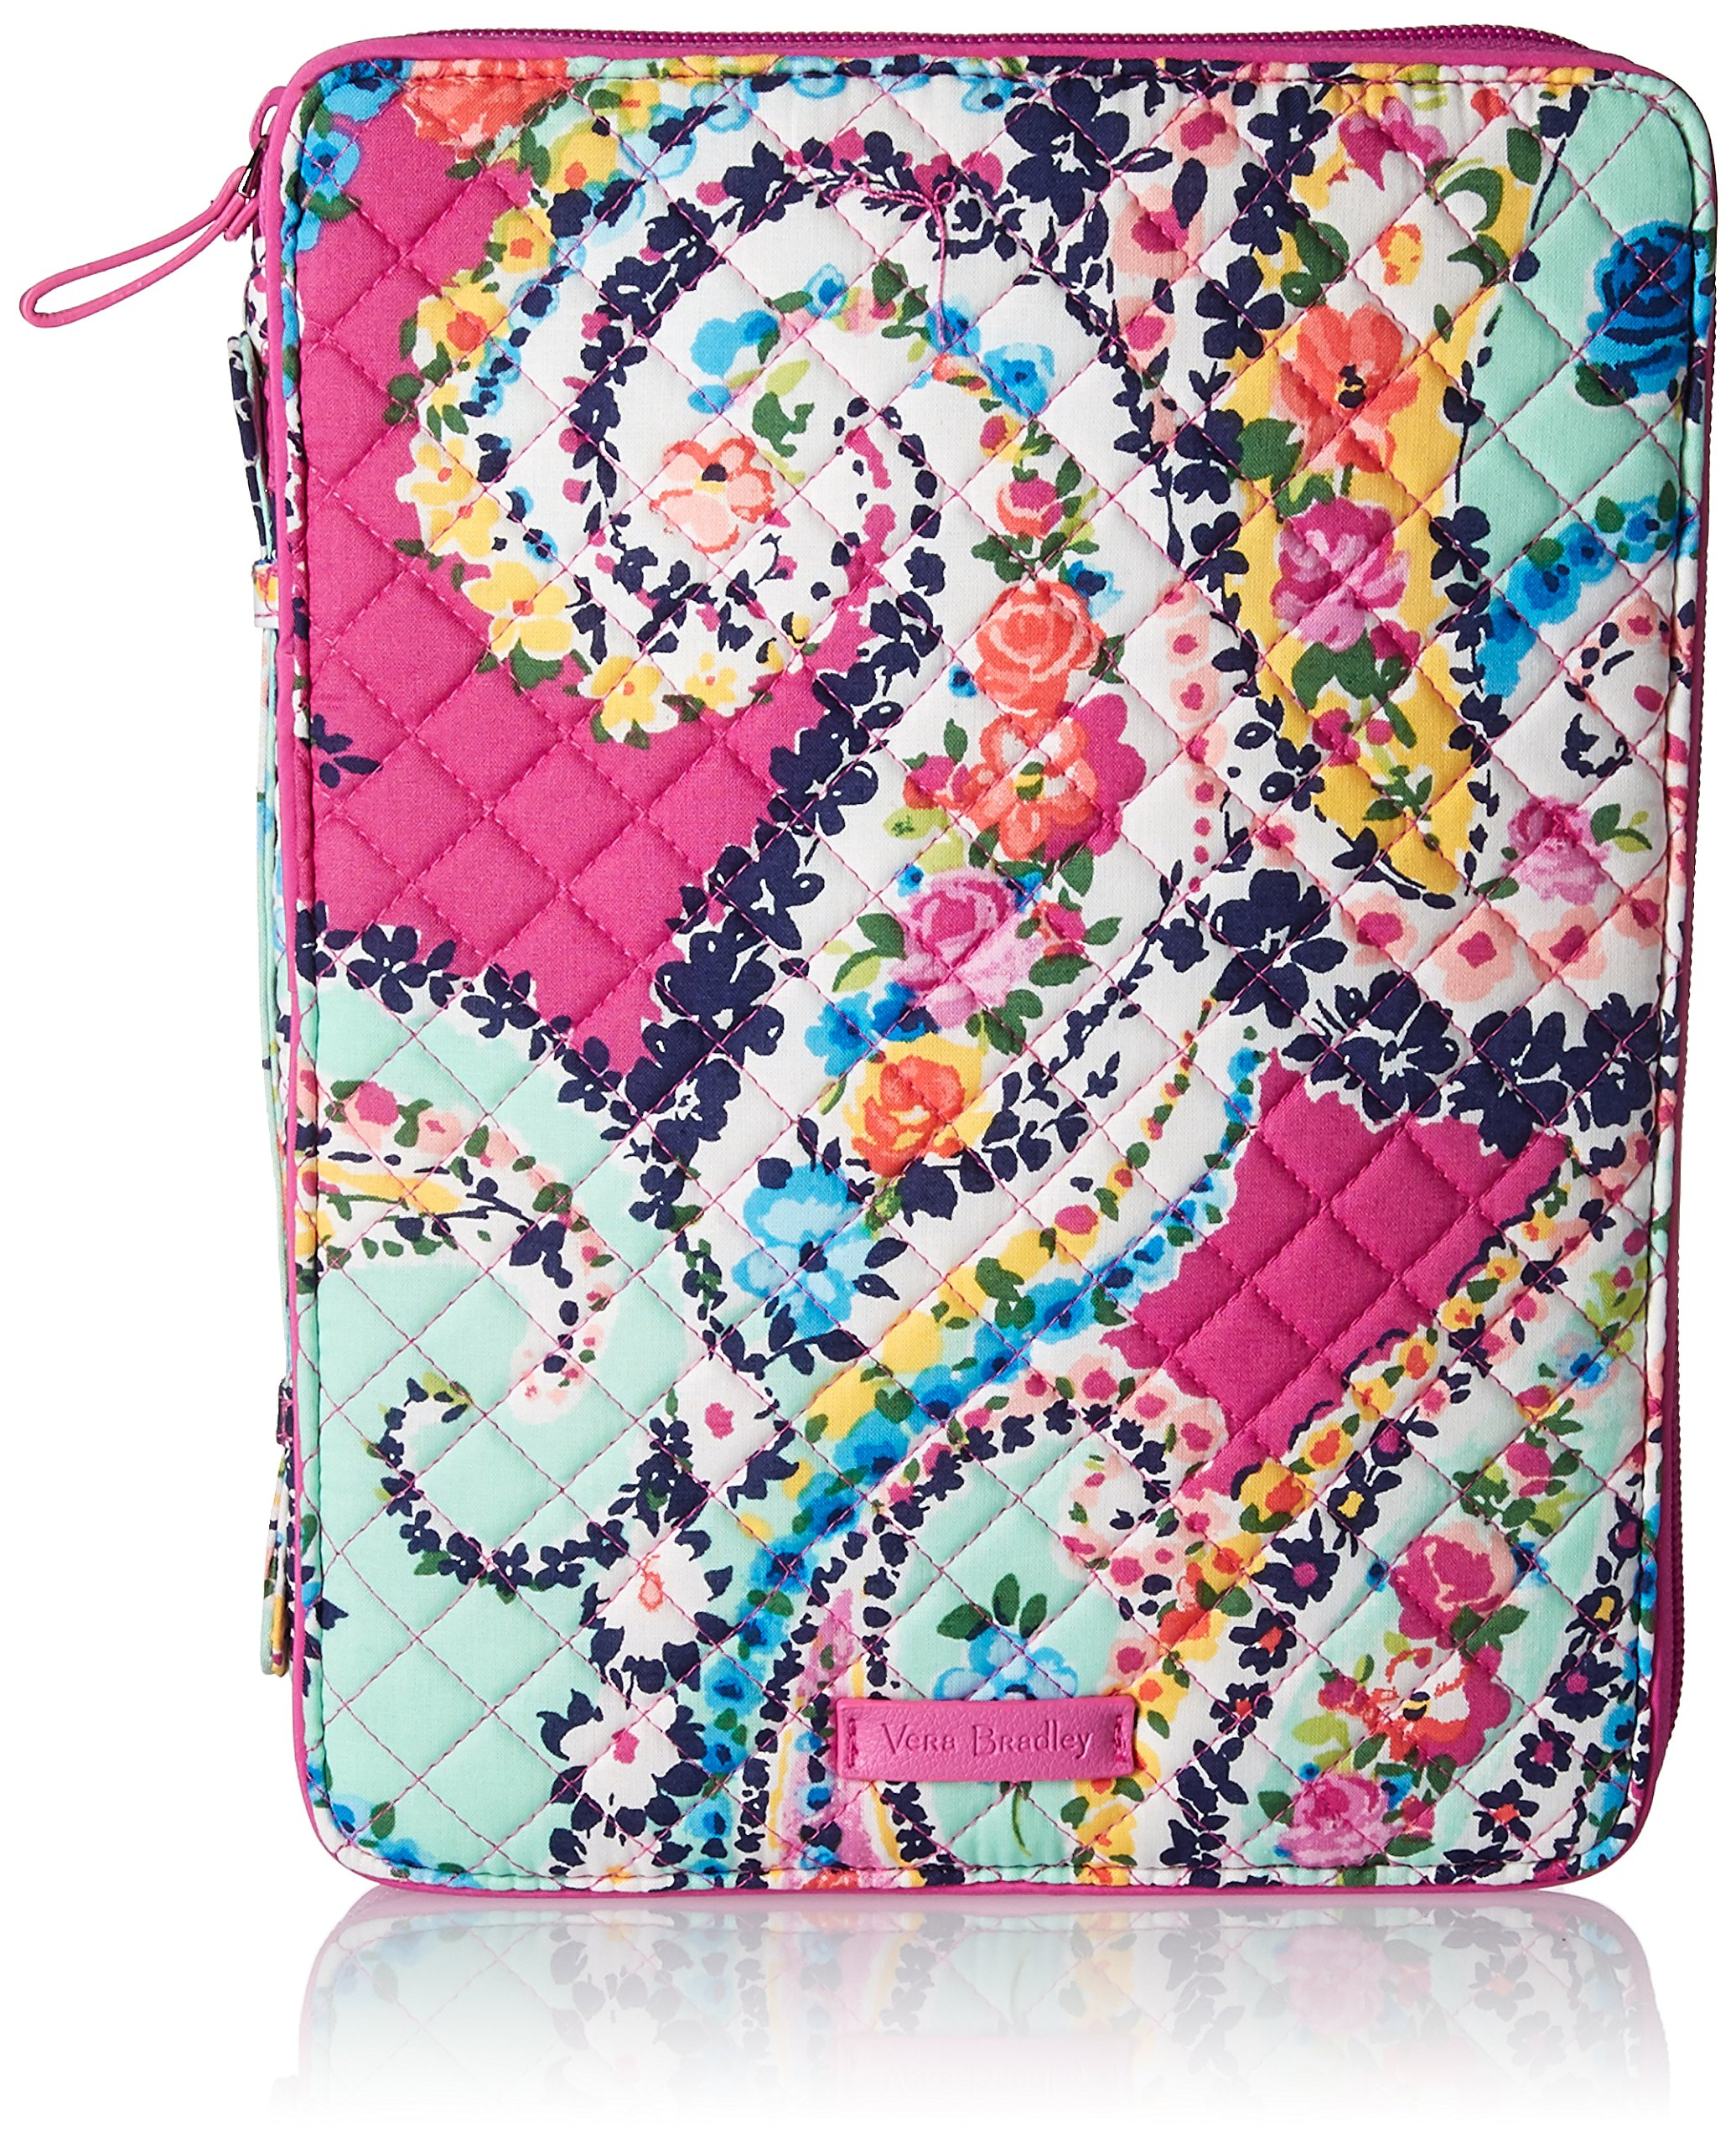 Vera Bradley Iconic Tablet Tamer Organizer, Signature Cotton, Wildflower Paisley, One Size